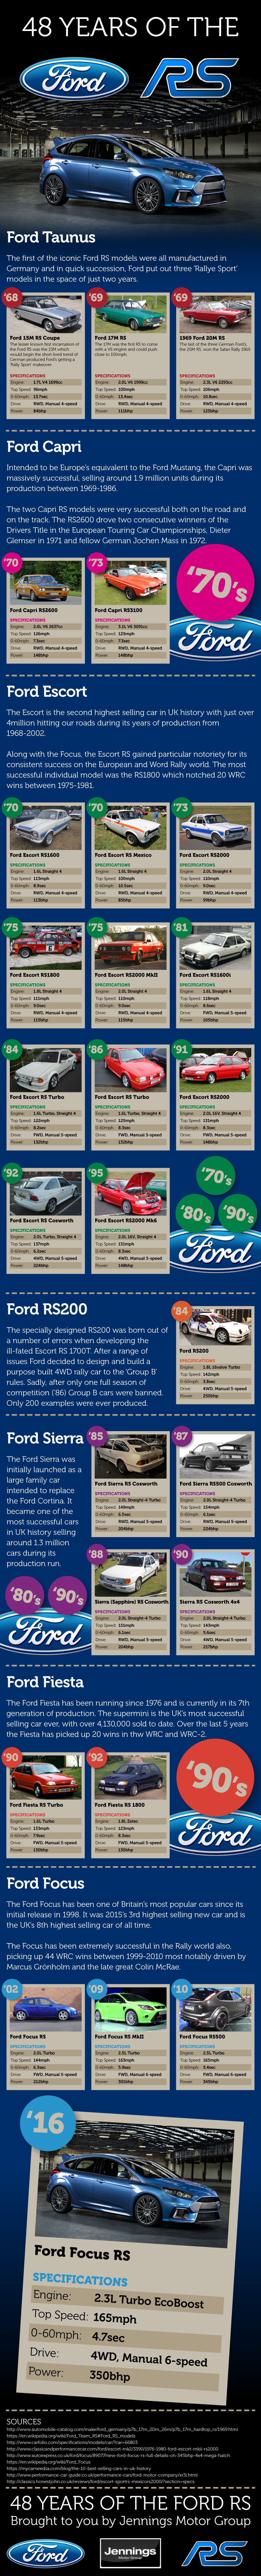 48 Years Of The Ford RS